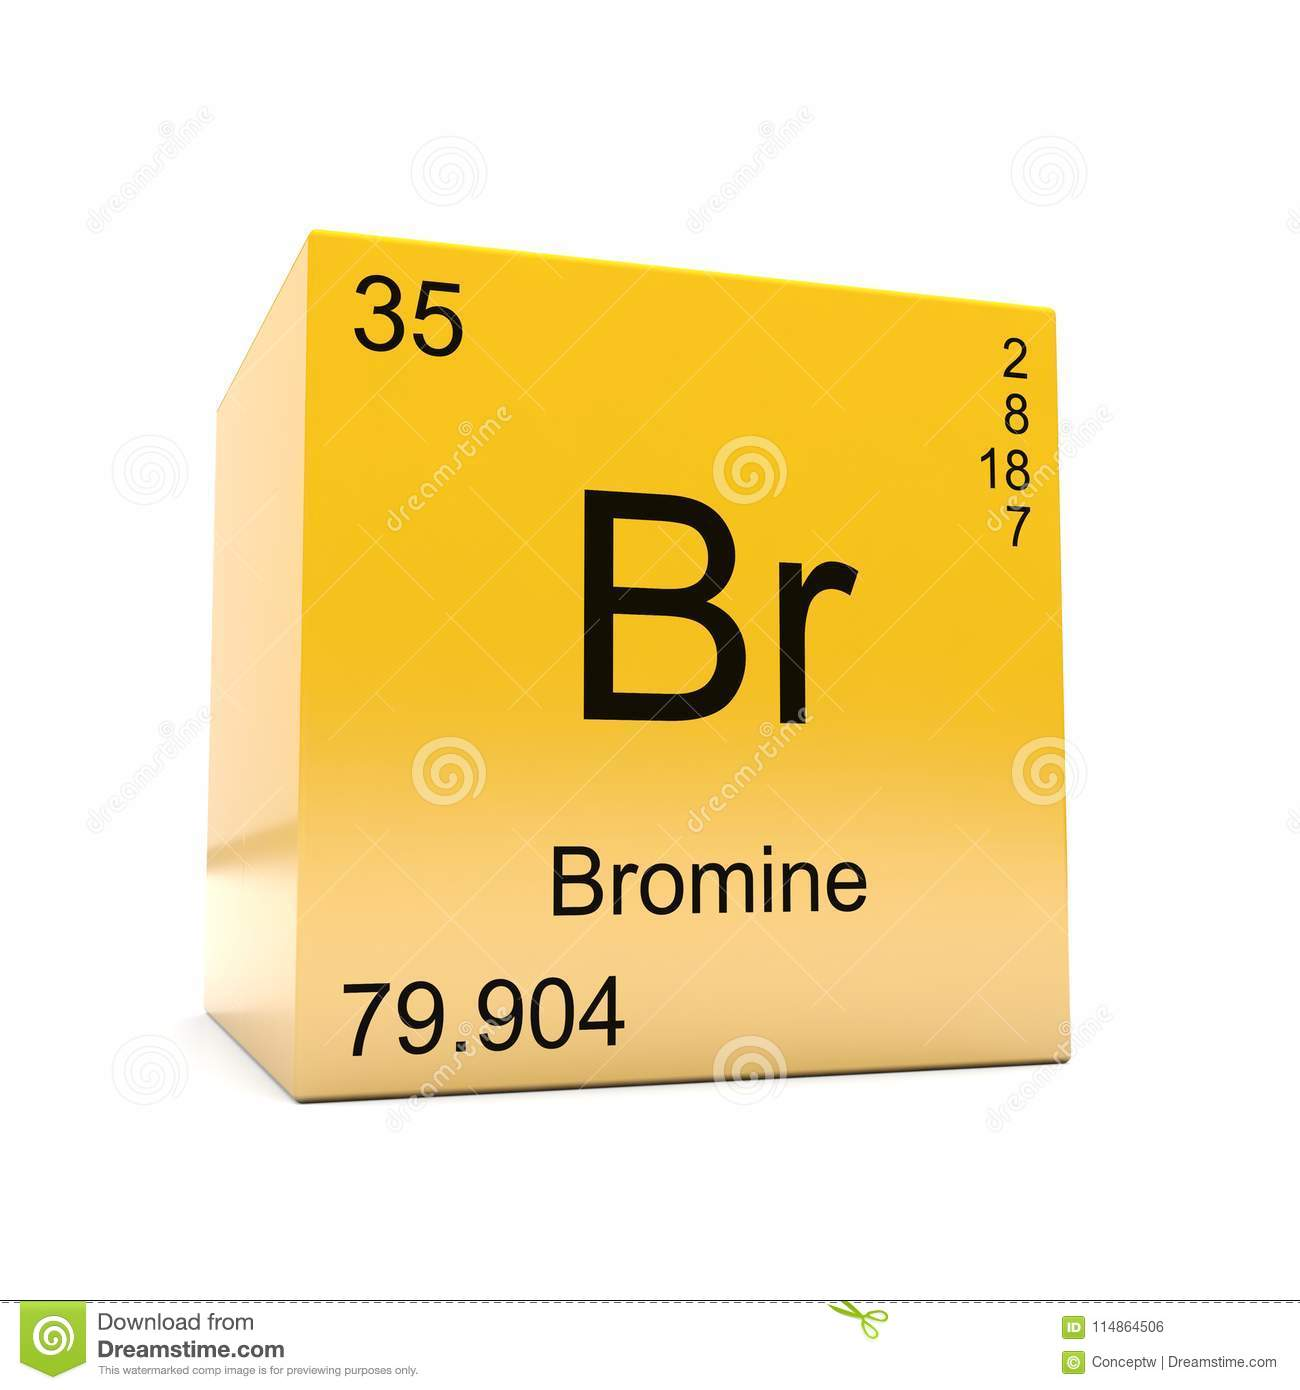 Bromine Chemical Element Symbol From Periodic Table Stock